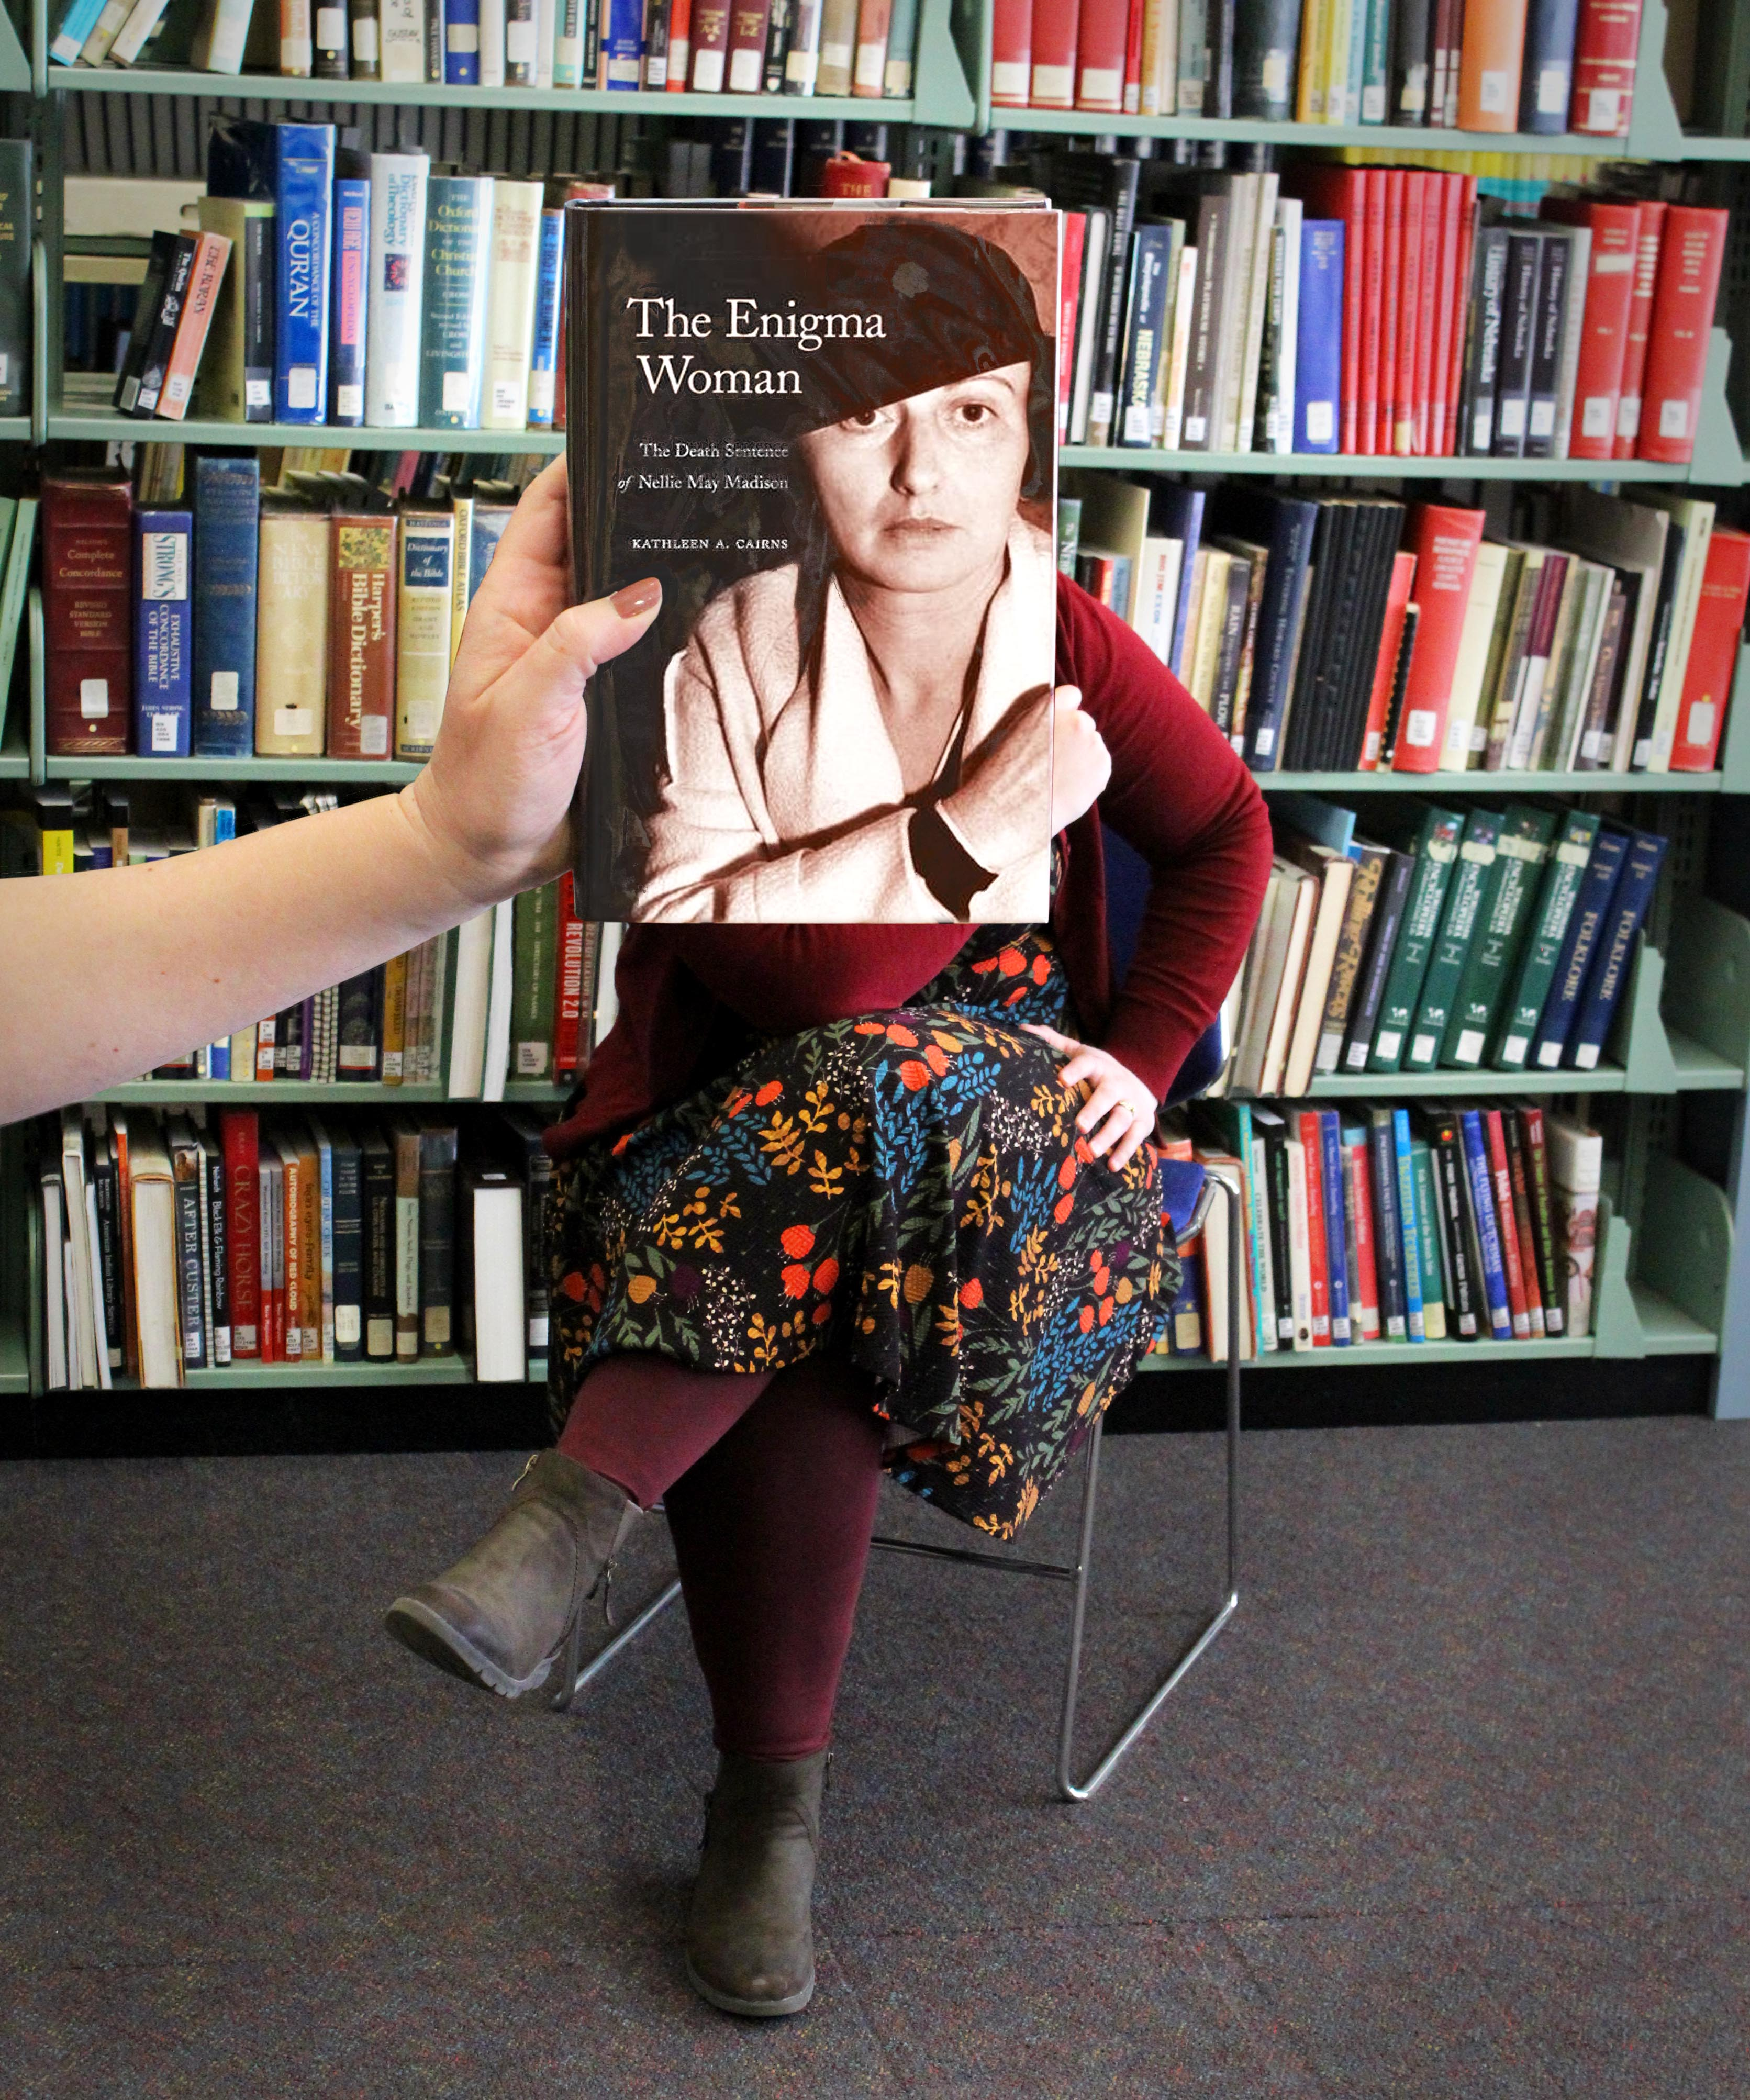 """The Enigma Woman"" BookFace Image"